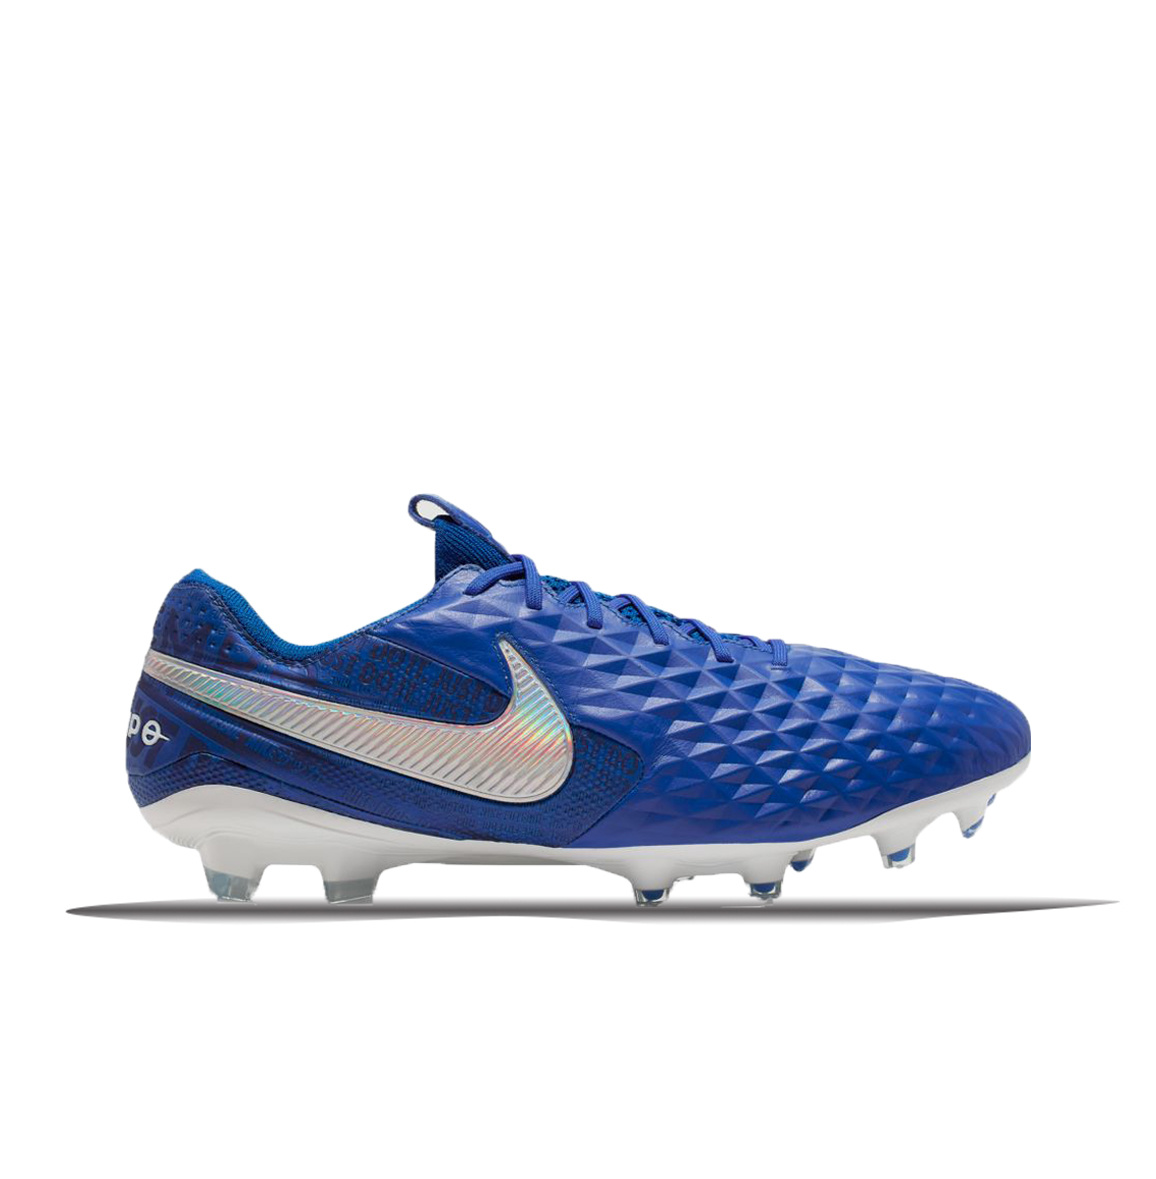 Nike NIKE Legend 8 Elite FG